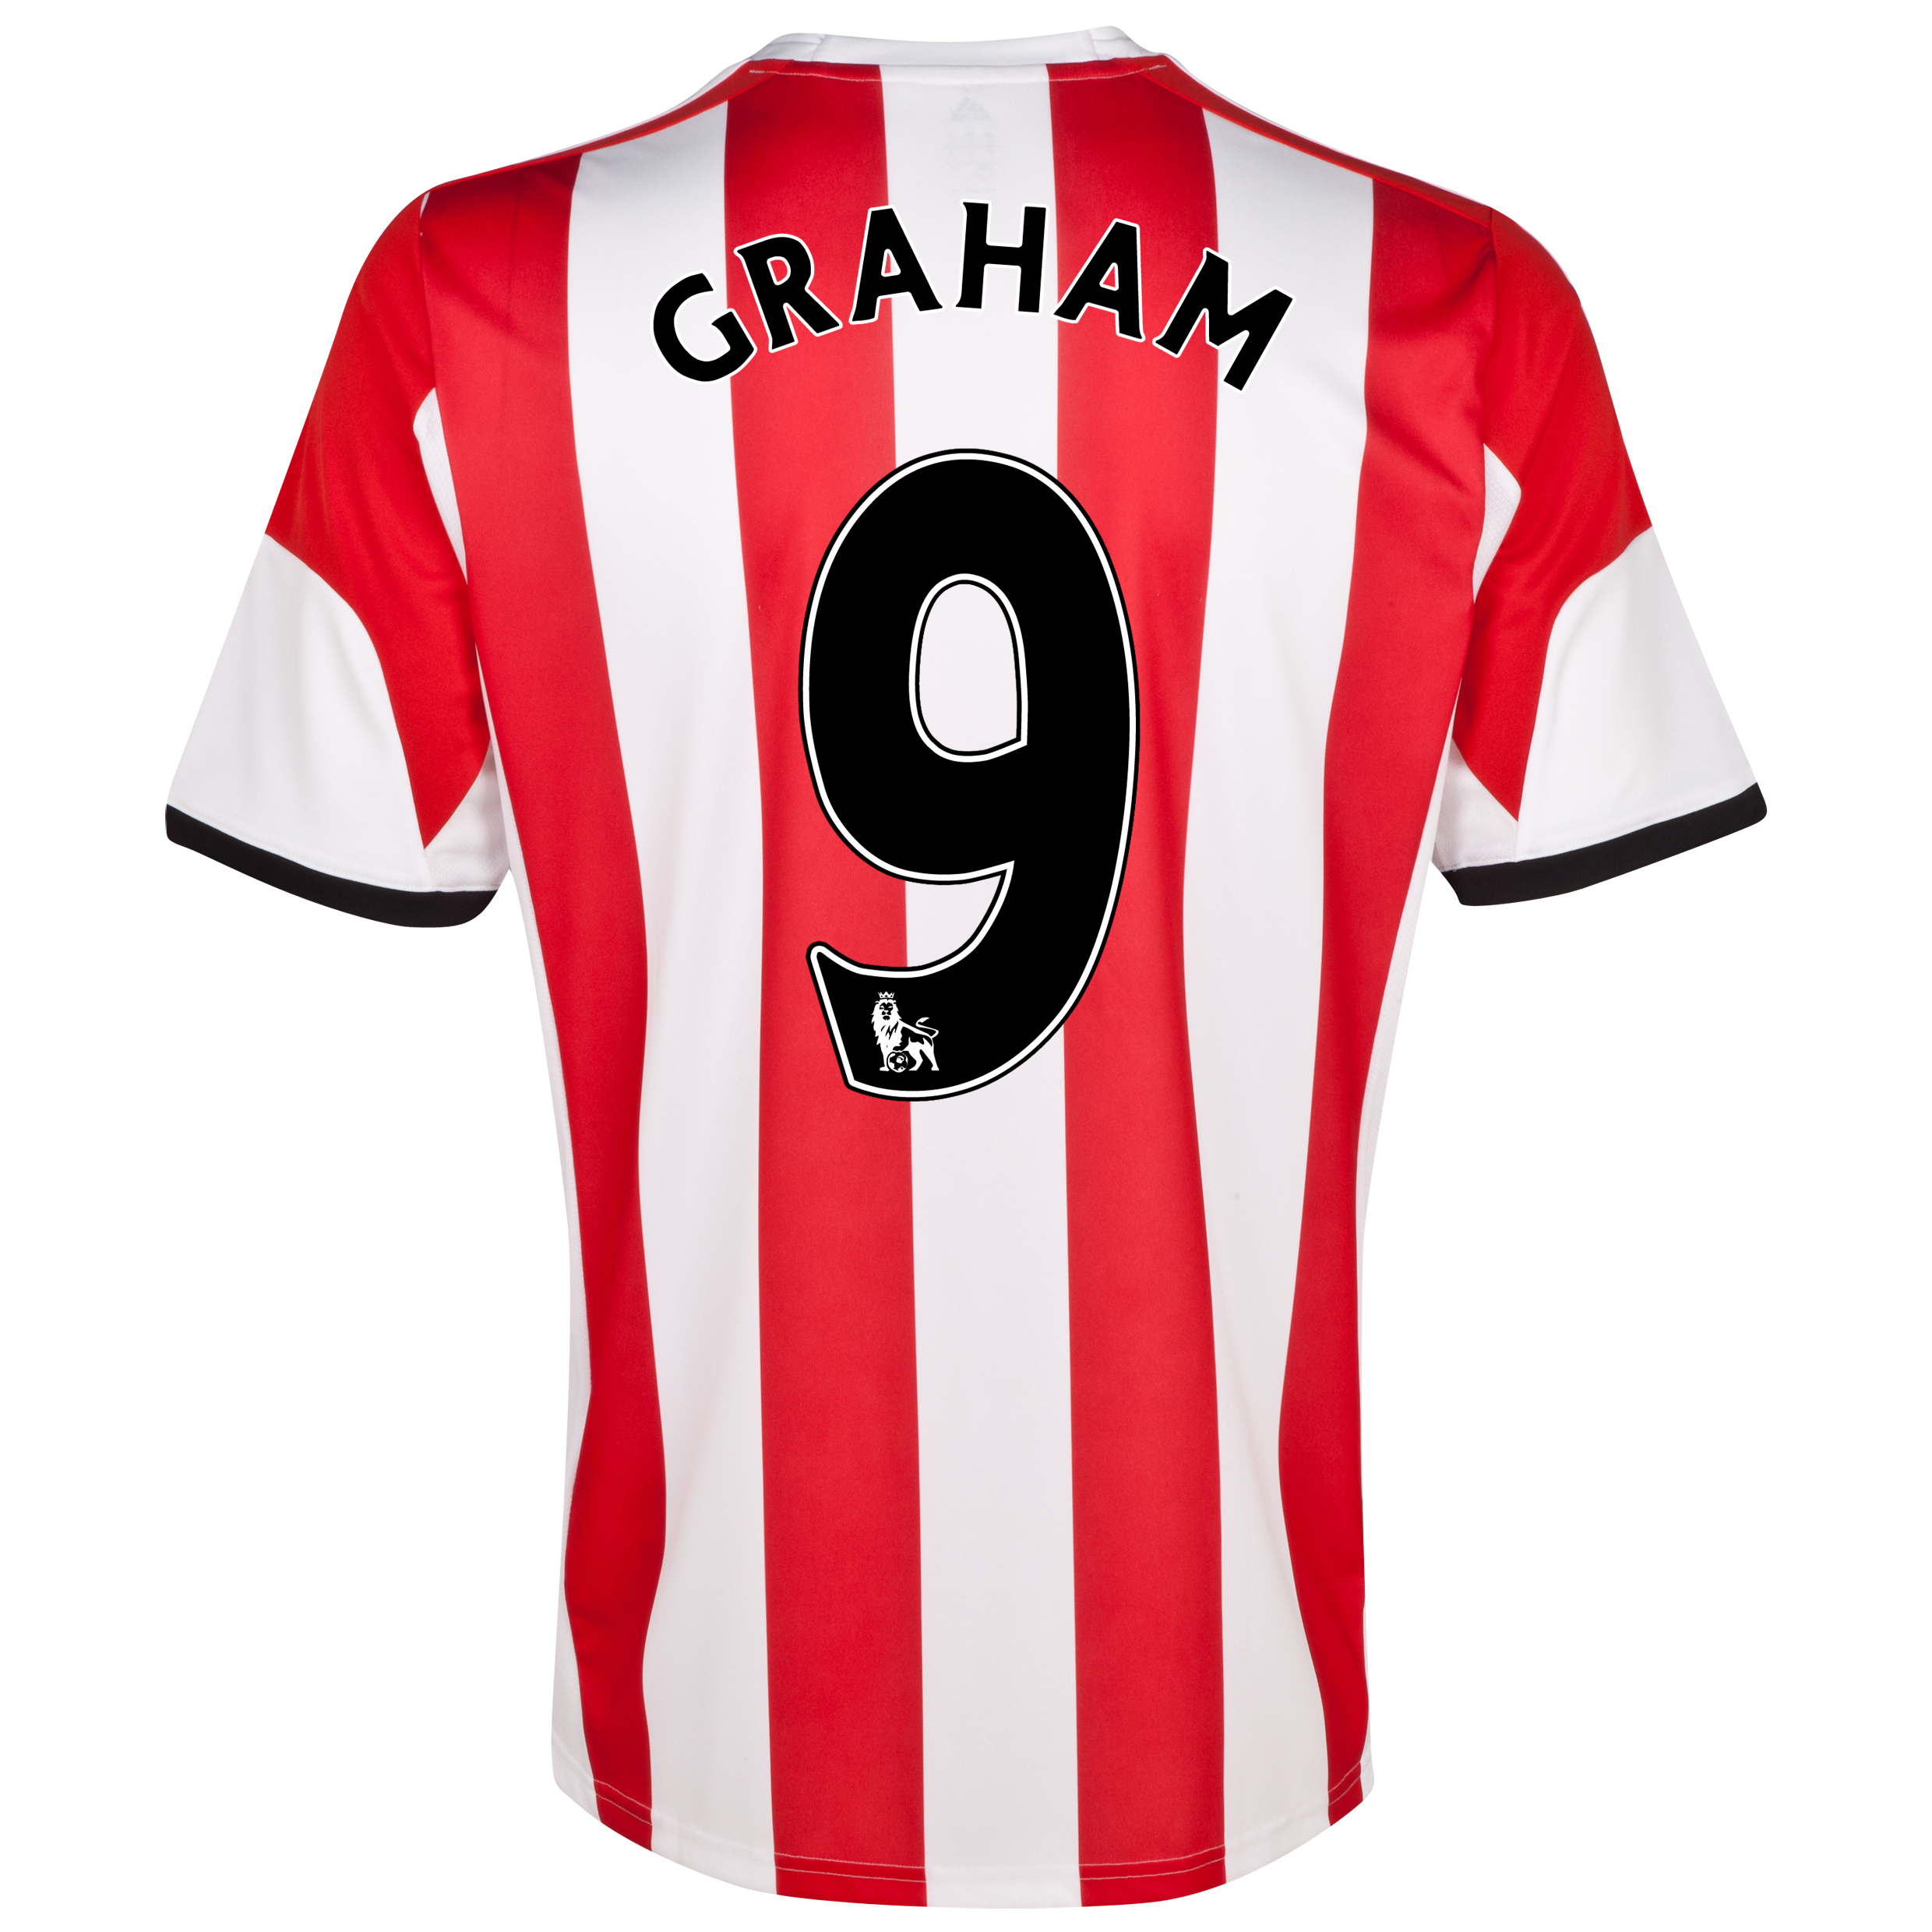 Sunderland Home Shirt 2013/14 - Junior with Graham 9 printing